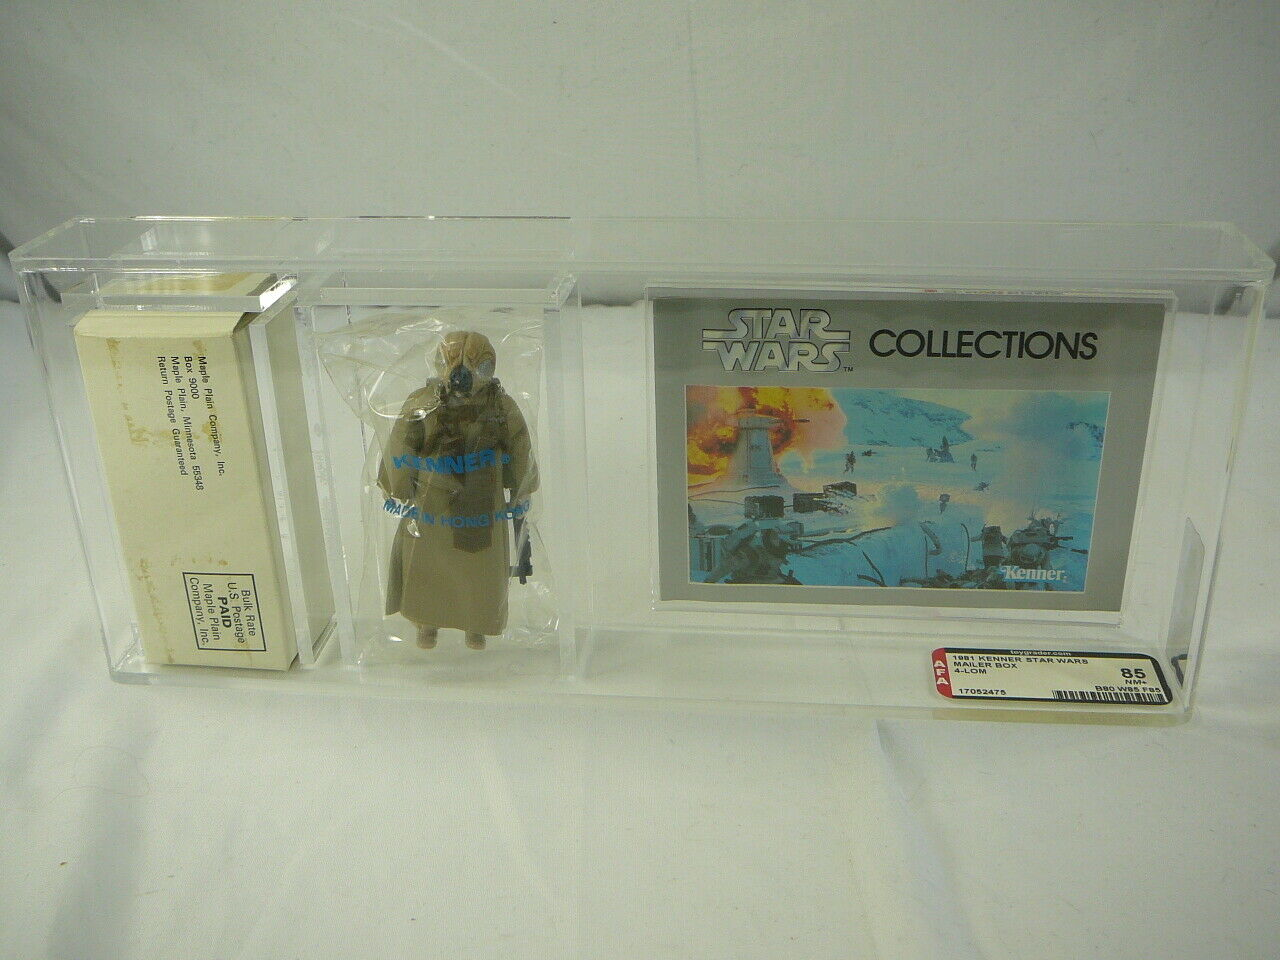 Kenner Star Wars 4-Lom Mail Offer Employee Owned Original AFA 85 Rare